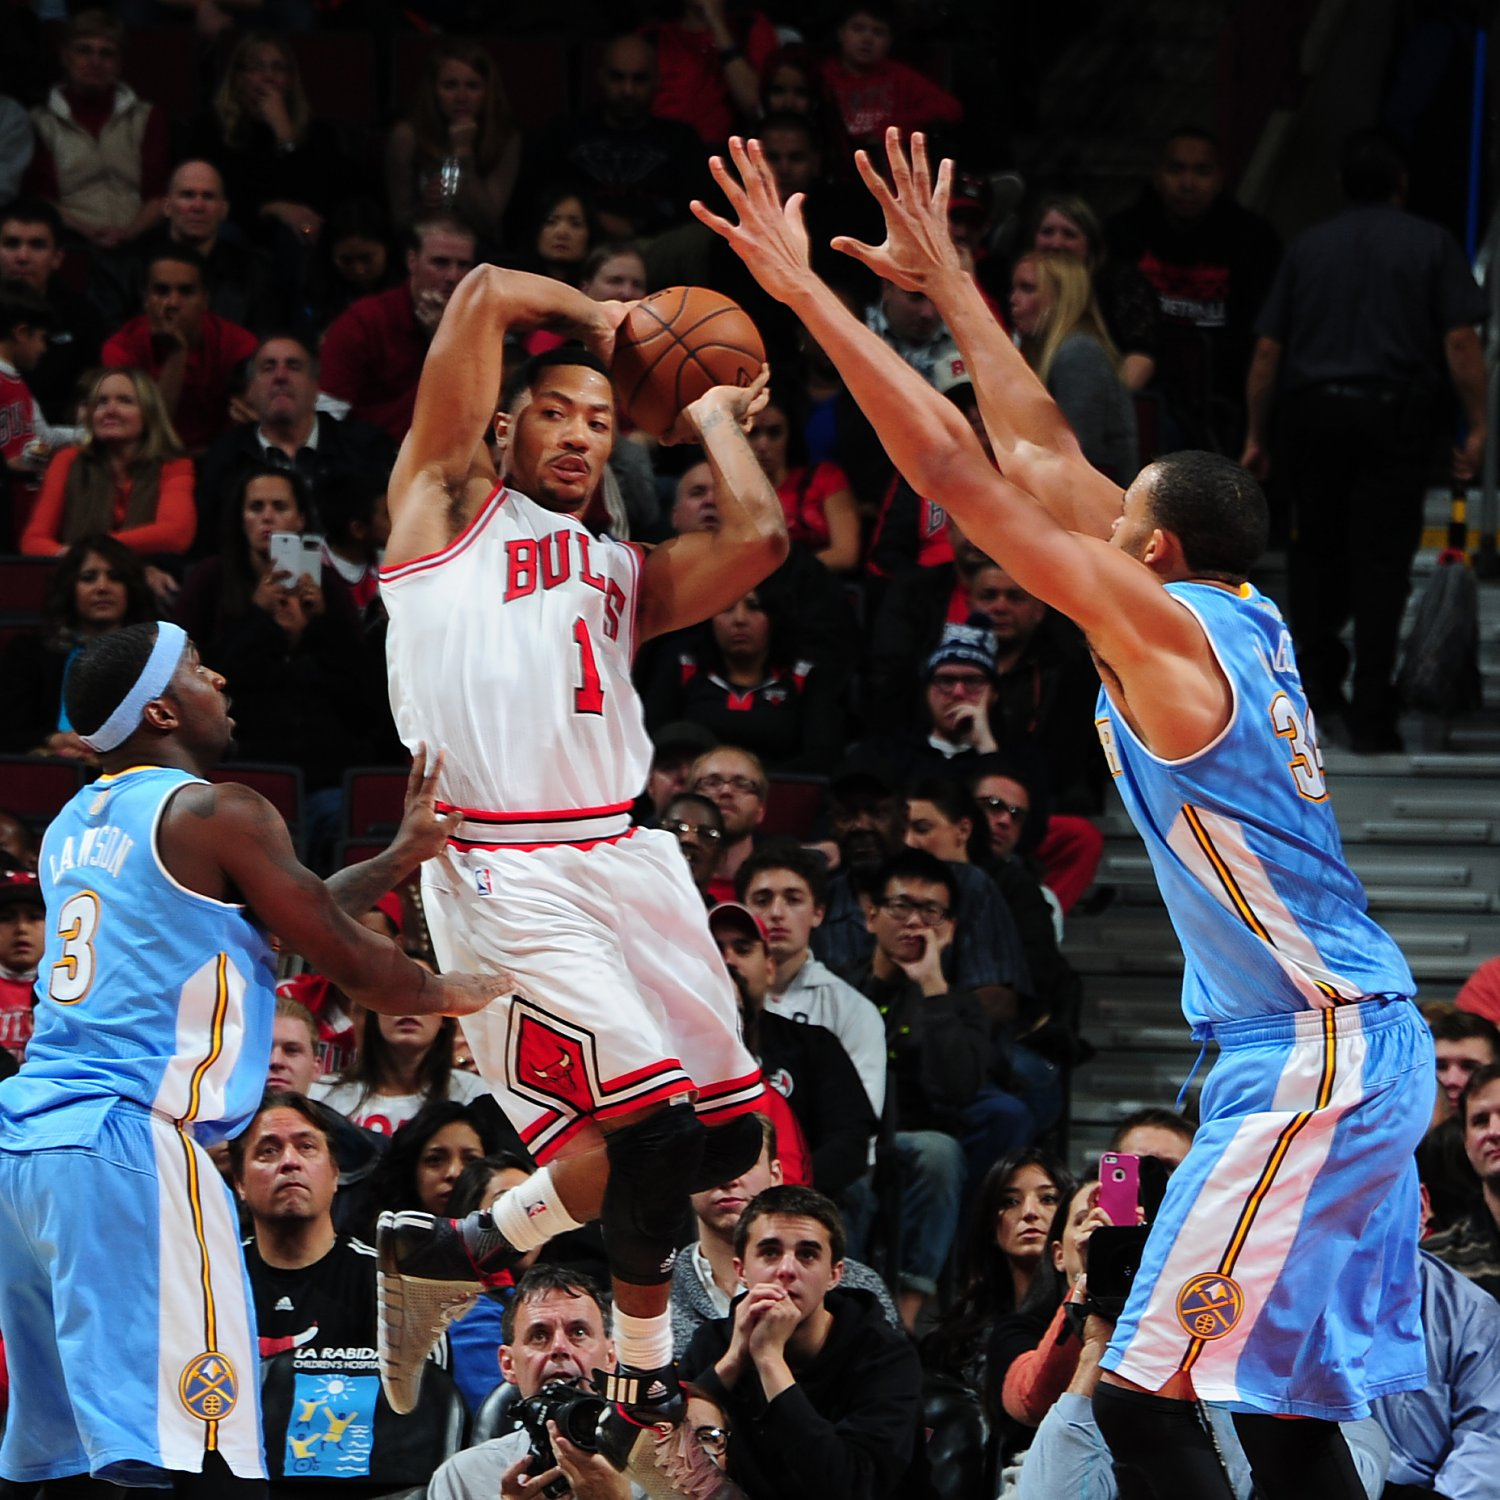 Denver Nuggets Vs. Chicago Bulls: Recap And Player Grades